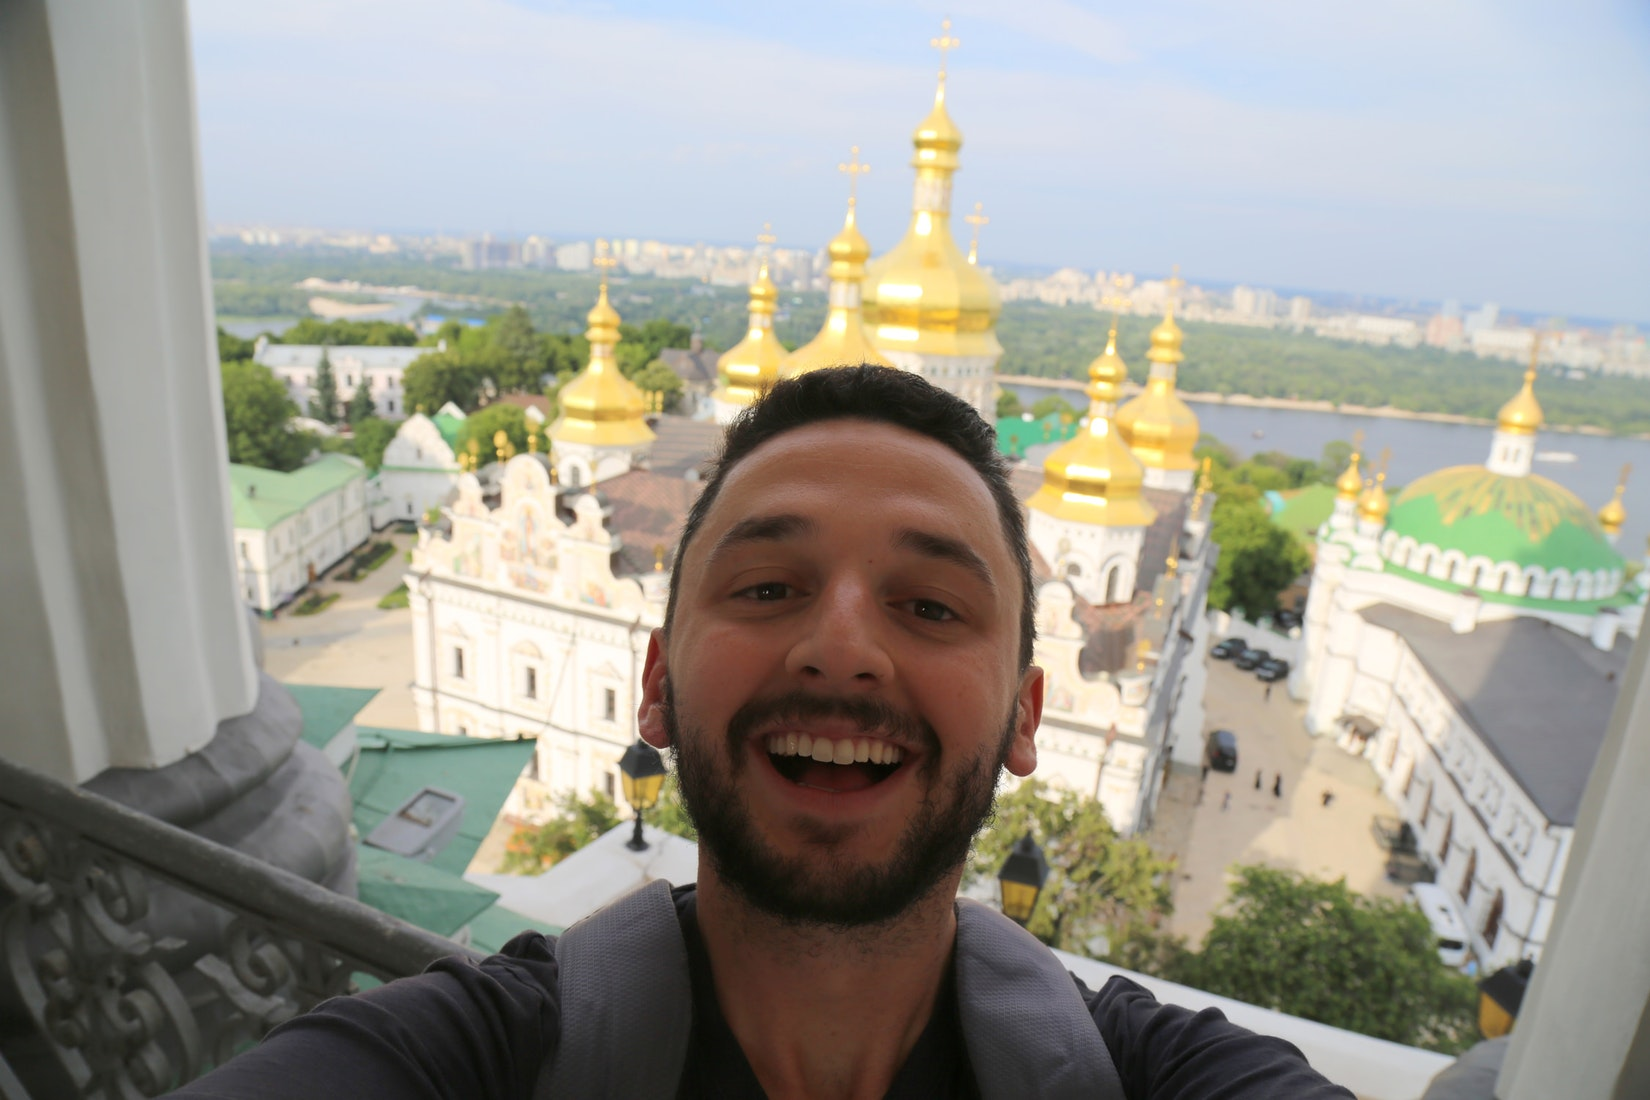 Daniel with a shot of awesome architecture in Kiev, Ukraine